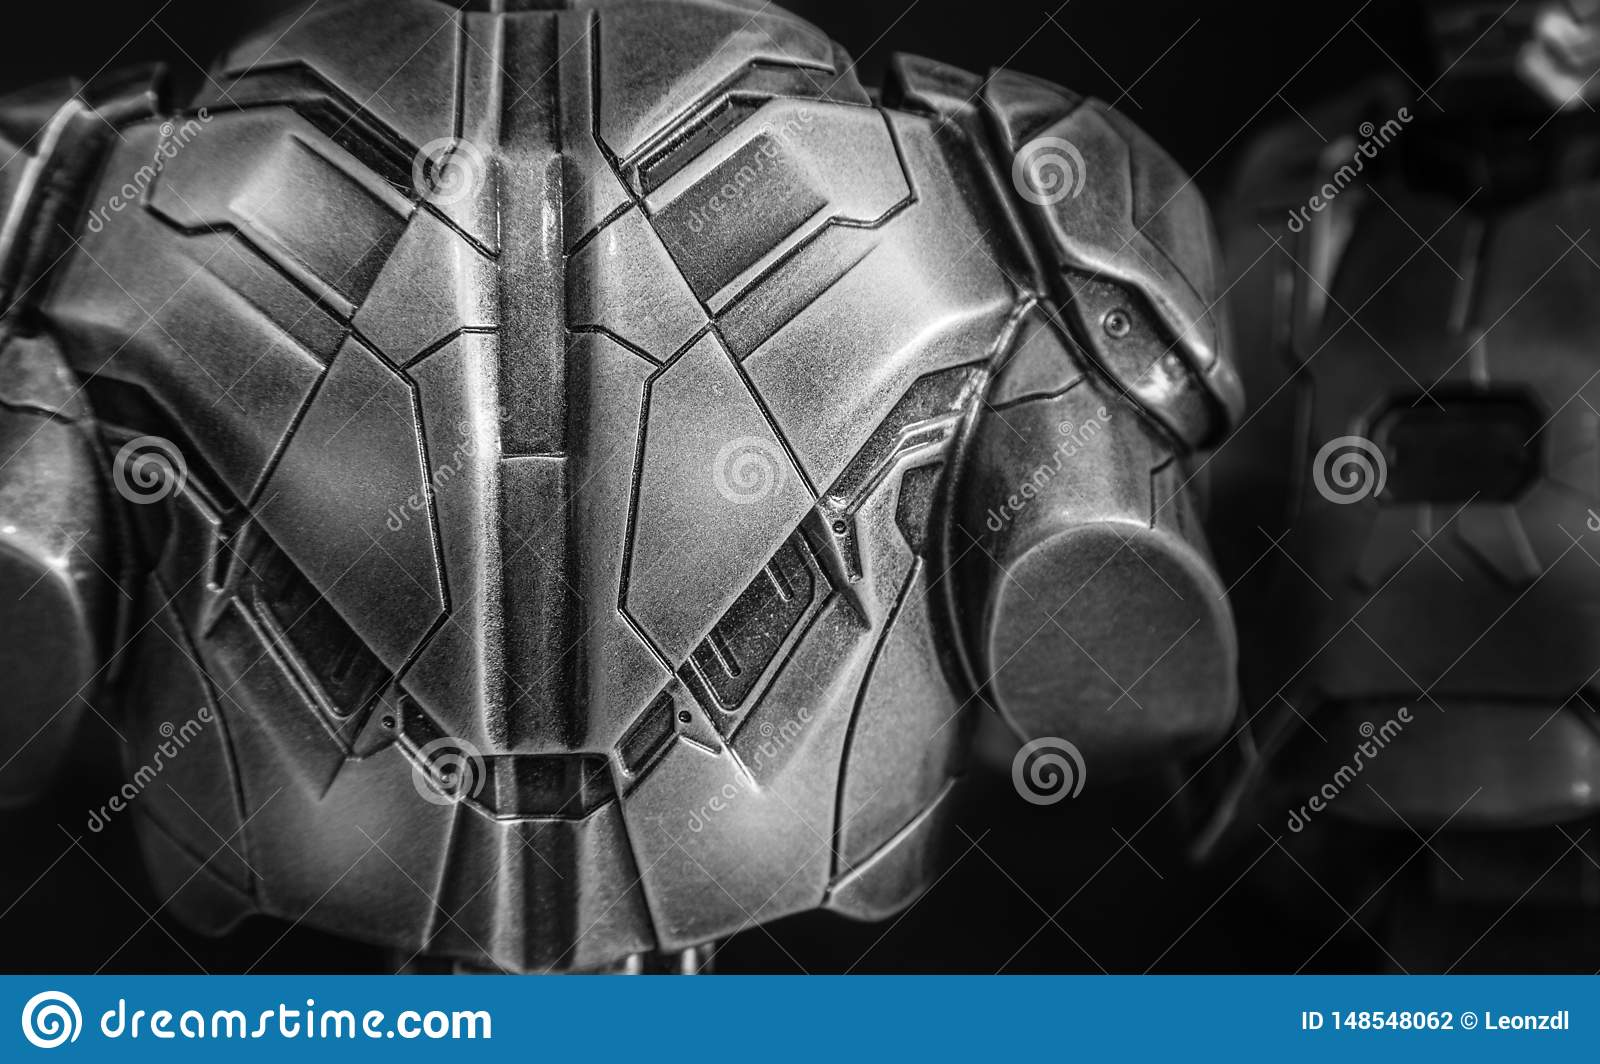 Warrior back metal armor closeup view